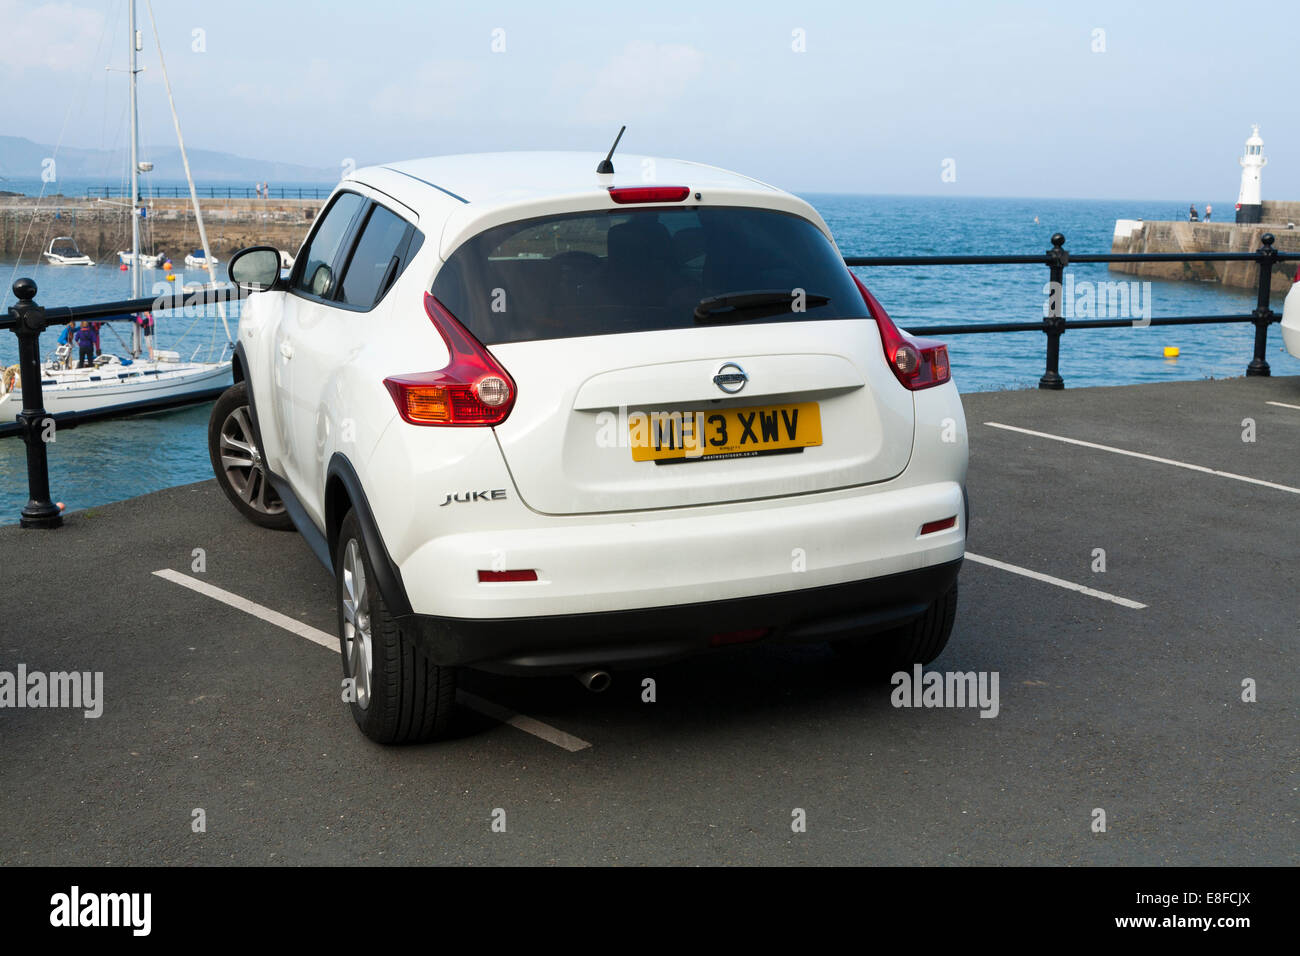 Nissan Juke car that's not been parked within the constraints of a parking space / white markings / bay, so - Stock Image